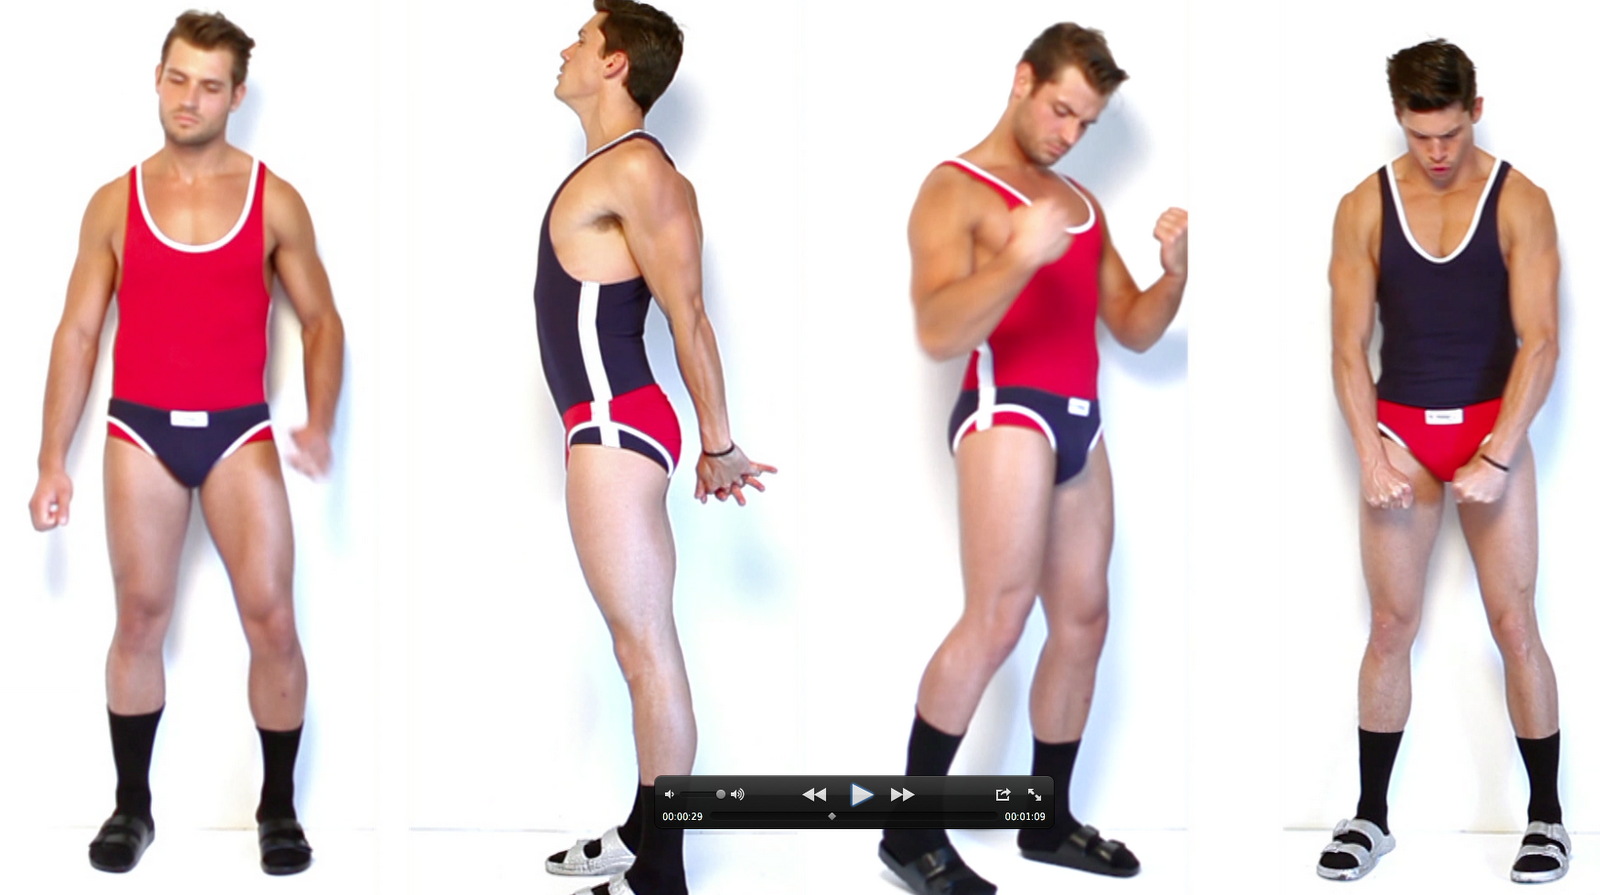 Below is a taste of our wrestling one, featuring our California Vintage ...